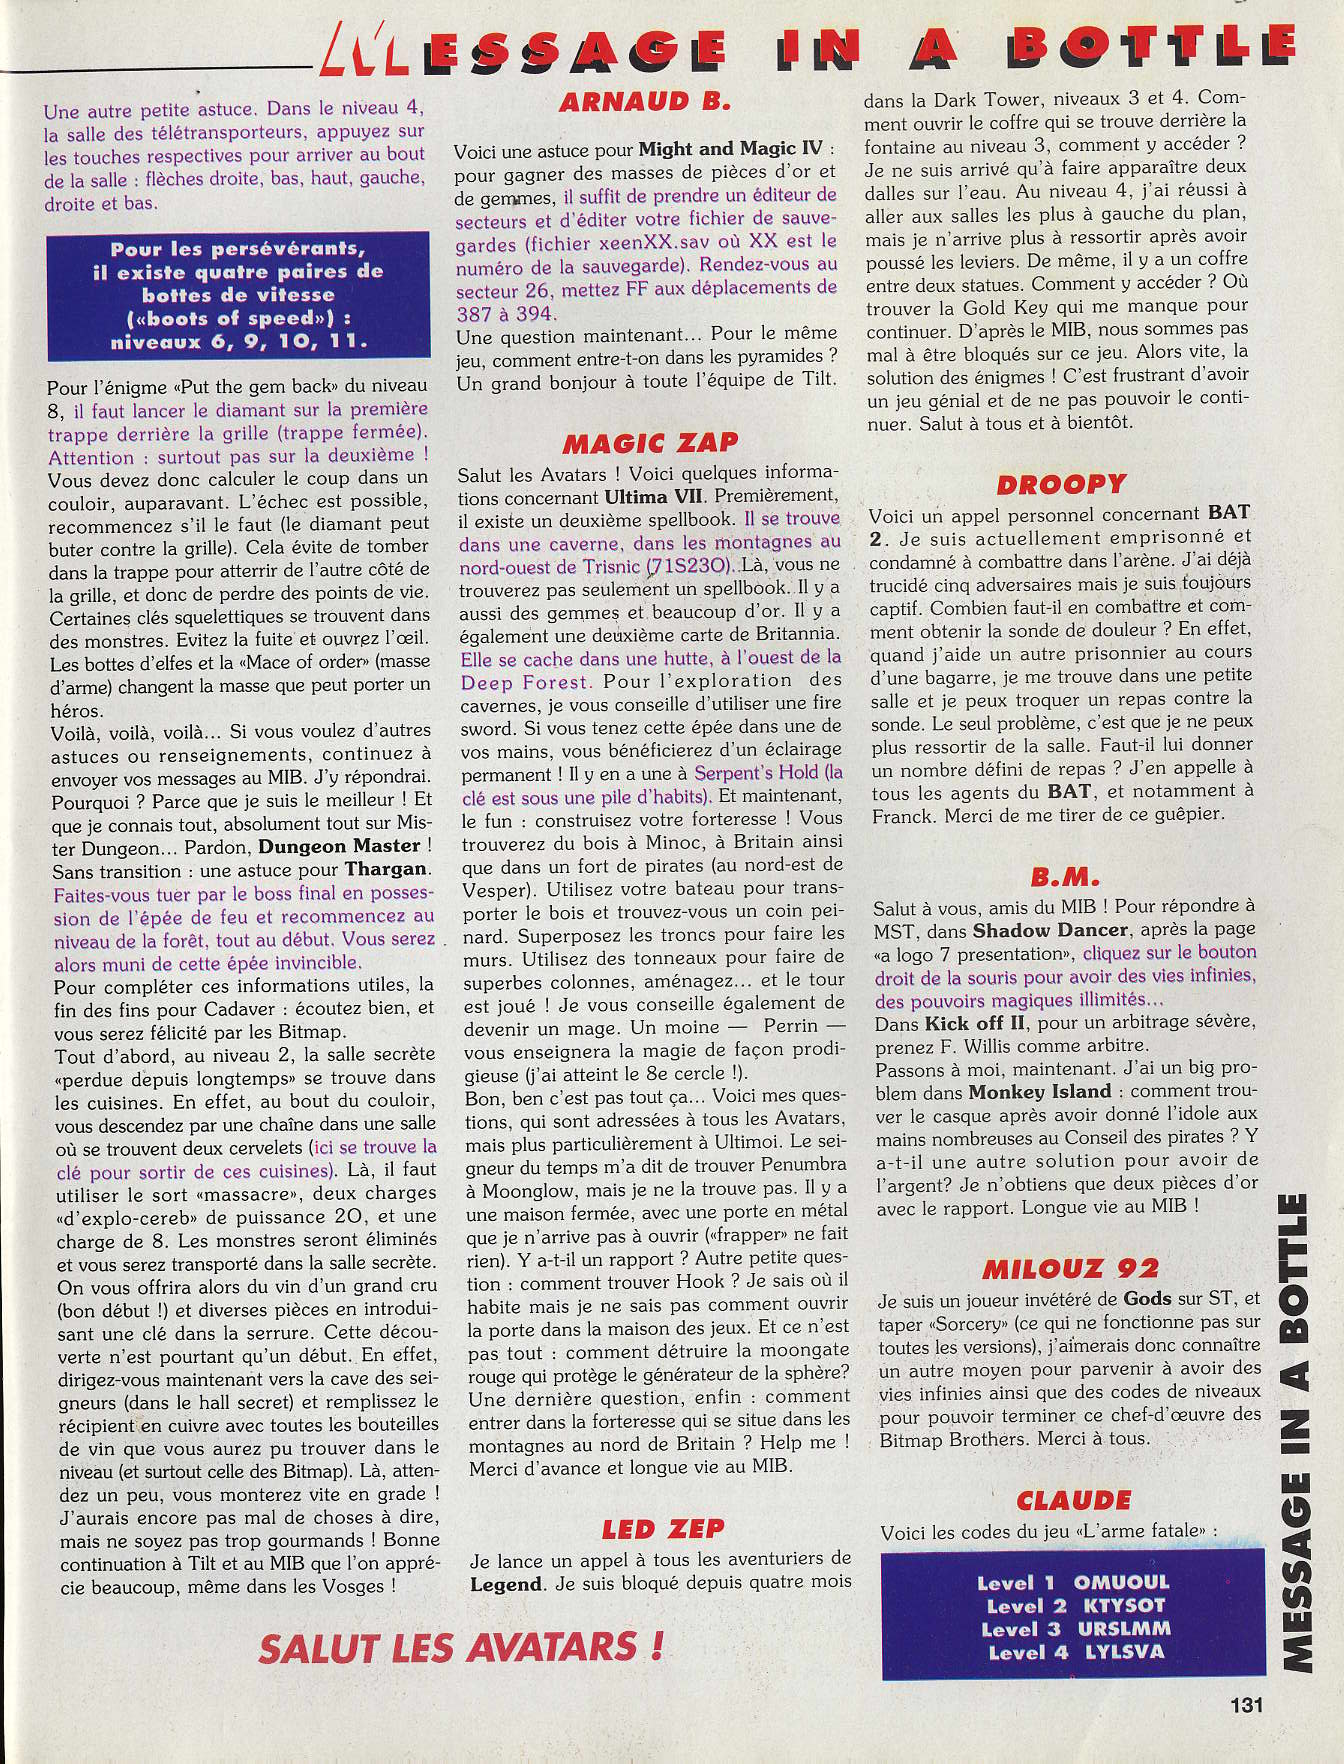 Dungeon Master and Chaos Strikes Back Hints published in French magazine 'Tilt', Issue #115, June 1993, Page 131